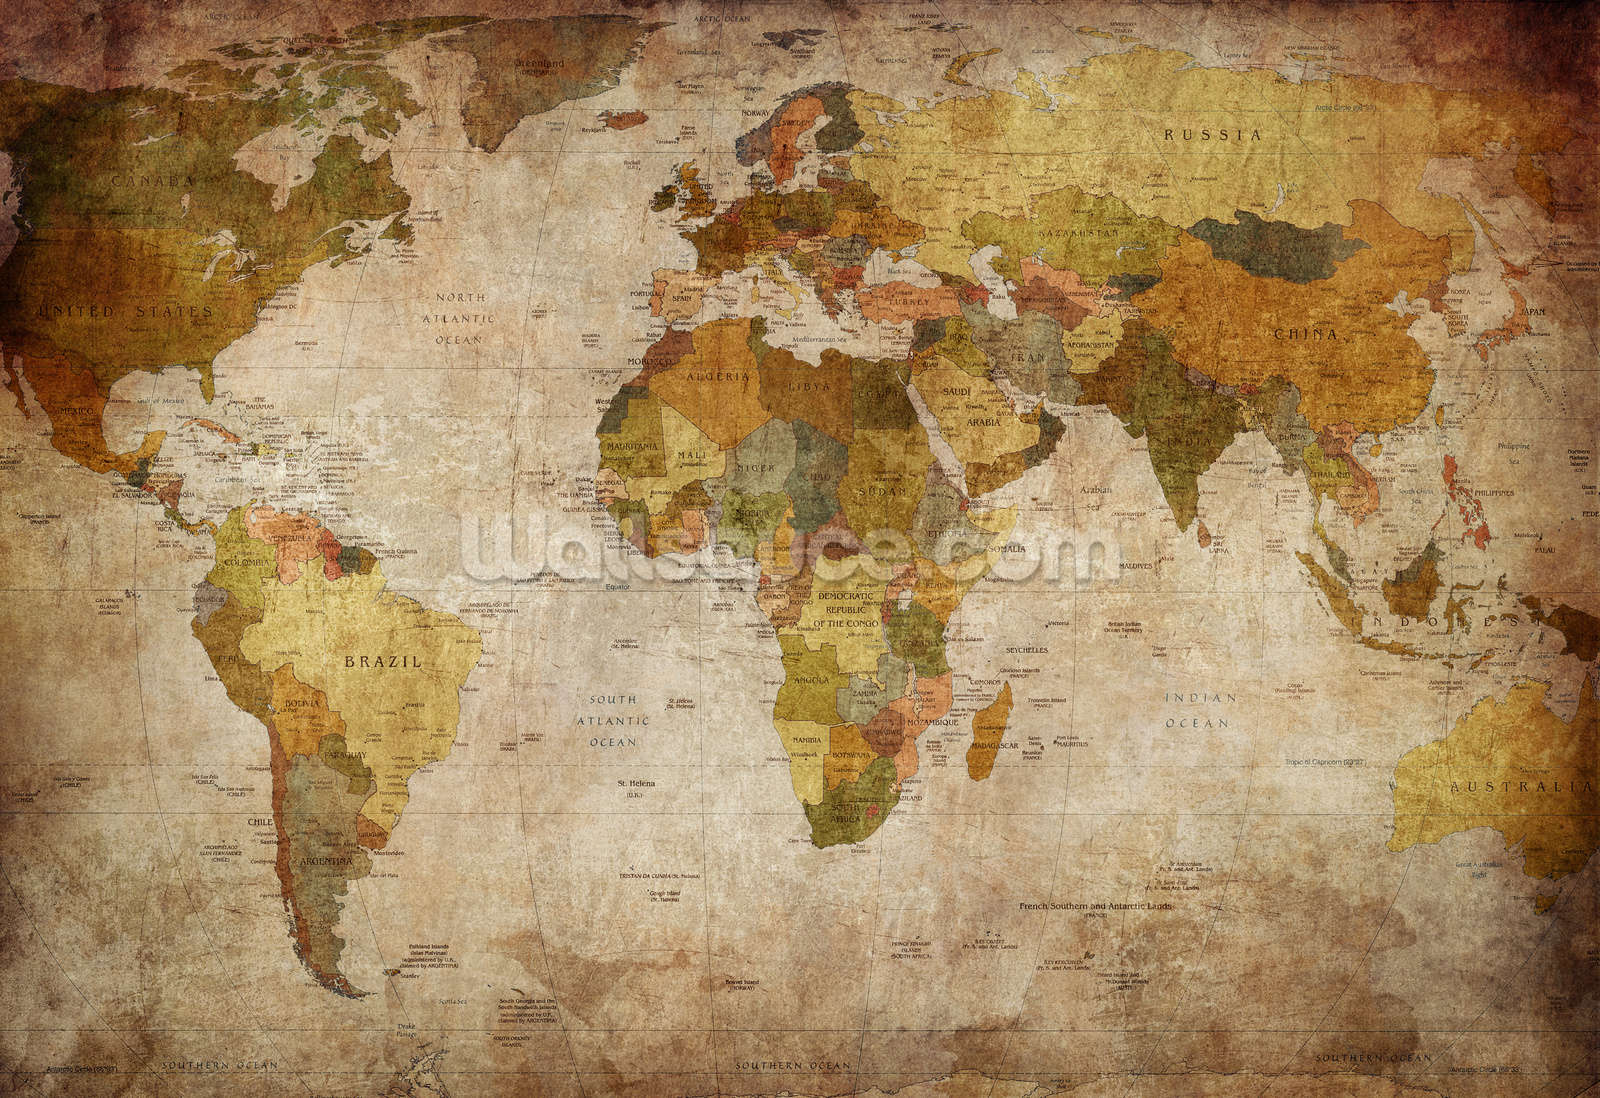 Old style world map wallpaper wall mural wallsauce usa old style world map wall mural photo wallpaper amipublicfo Gallery